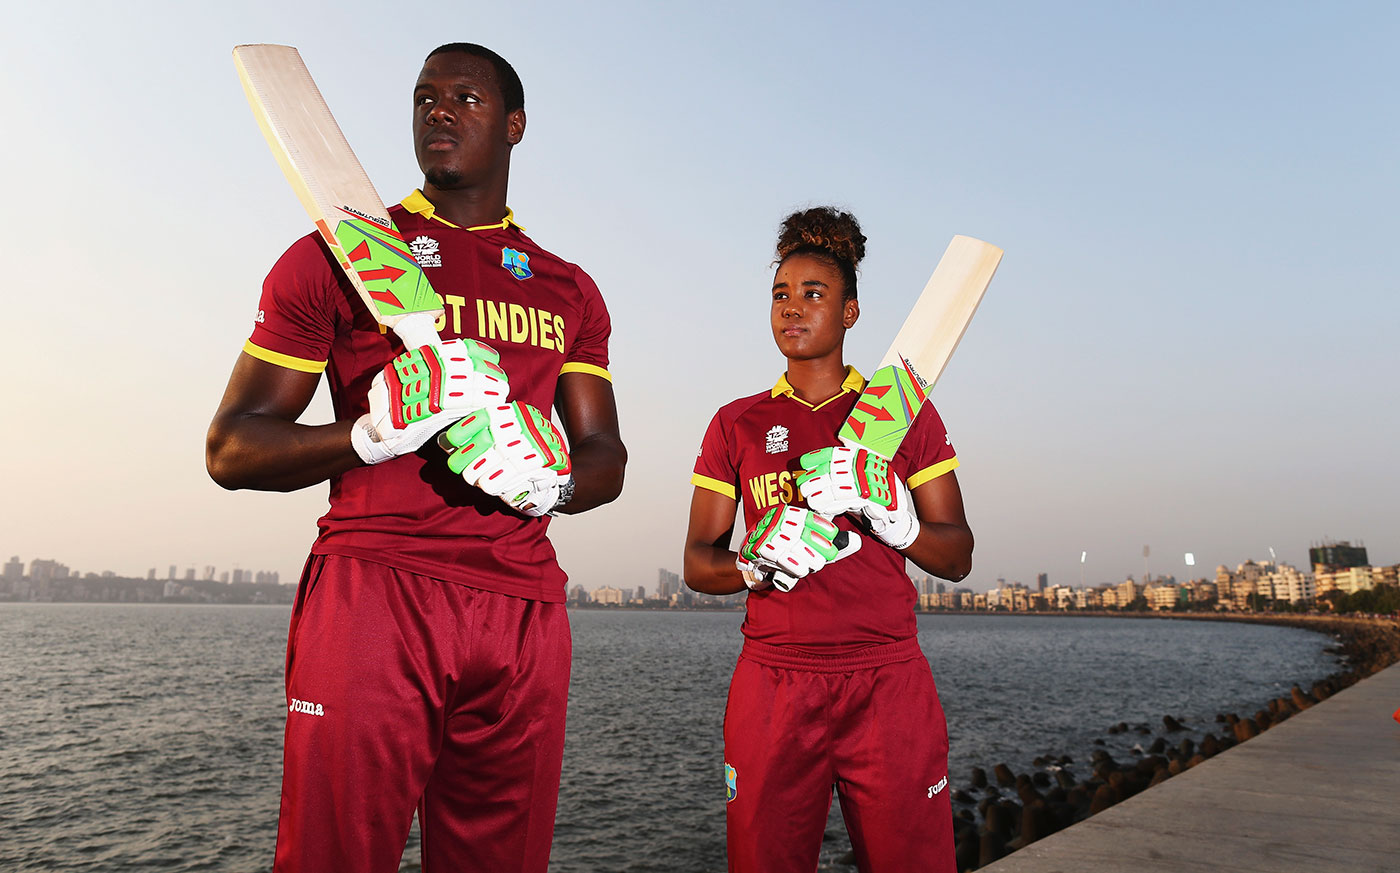 Carlos Brathwaite, the hero of the men's World T20, is a mentor, friend and equipment sponsor to Matthews